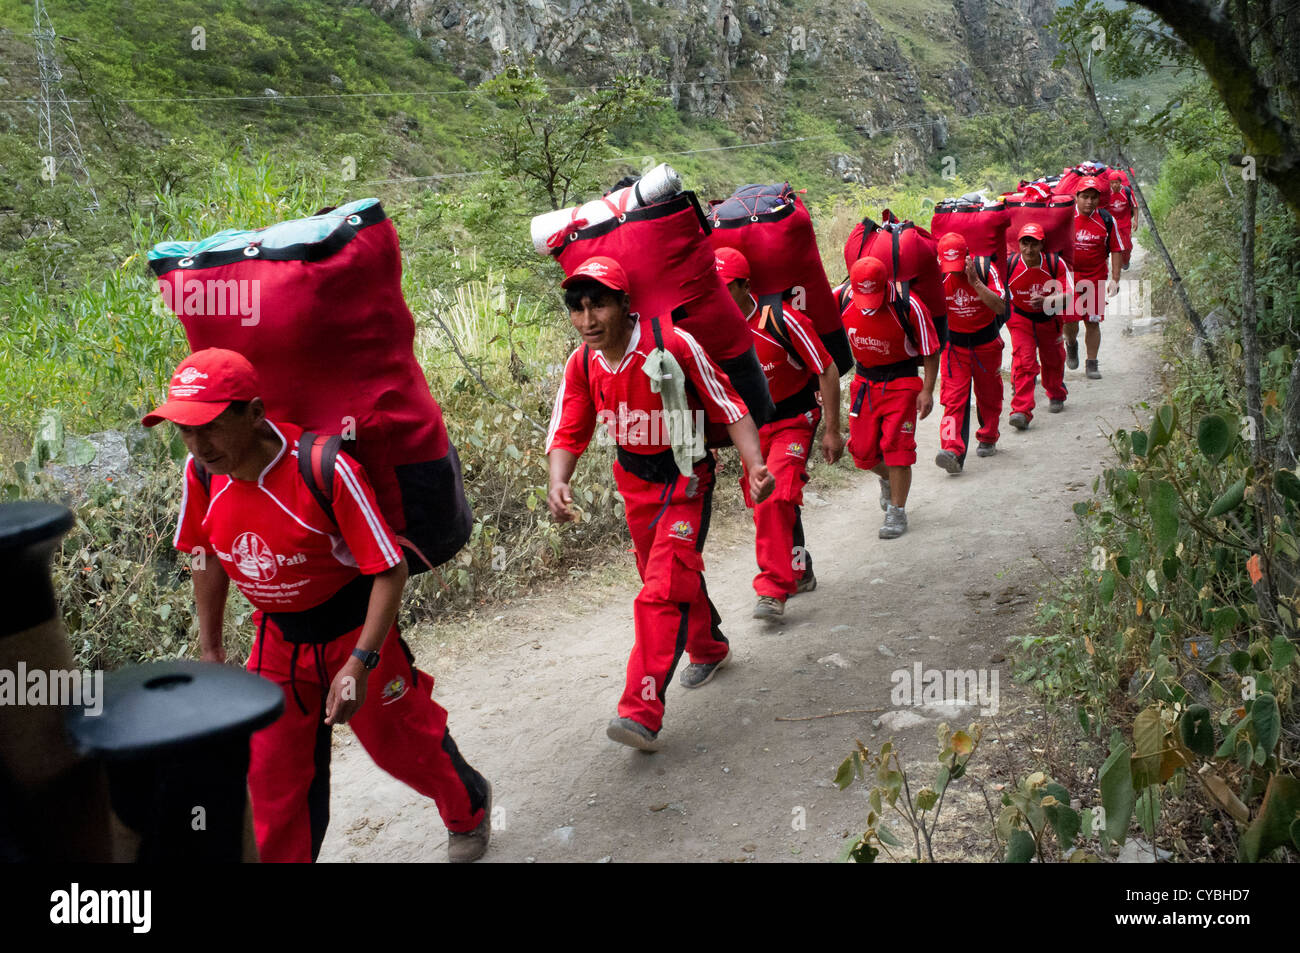 Porters carrying tourists' camping equipments on the Inca Trail to Maccu Picchu. Peru. - Stock Image